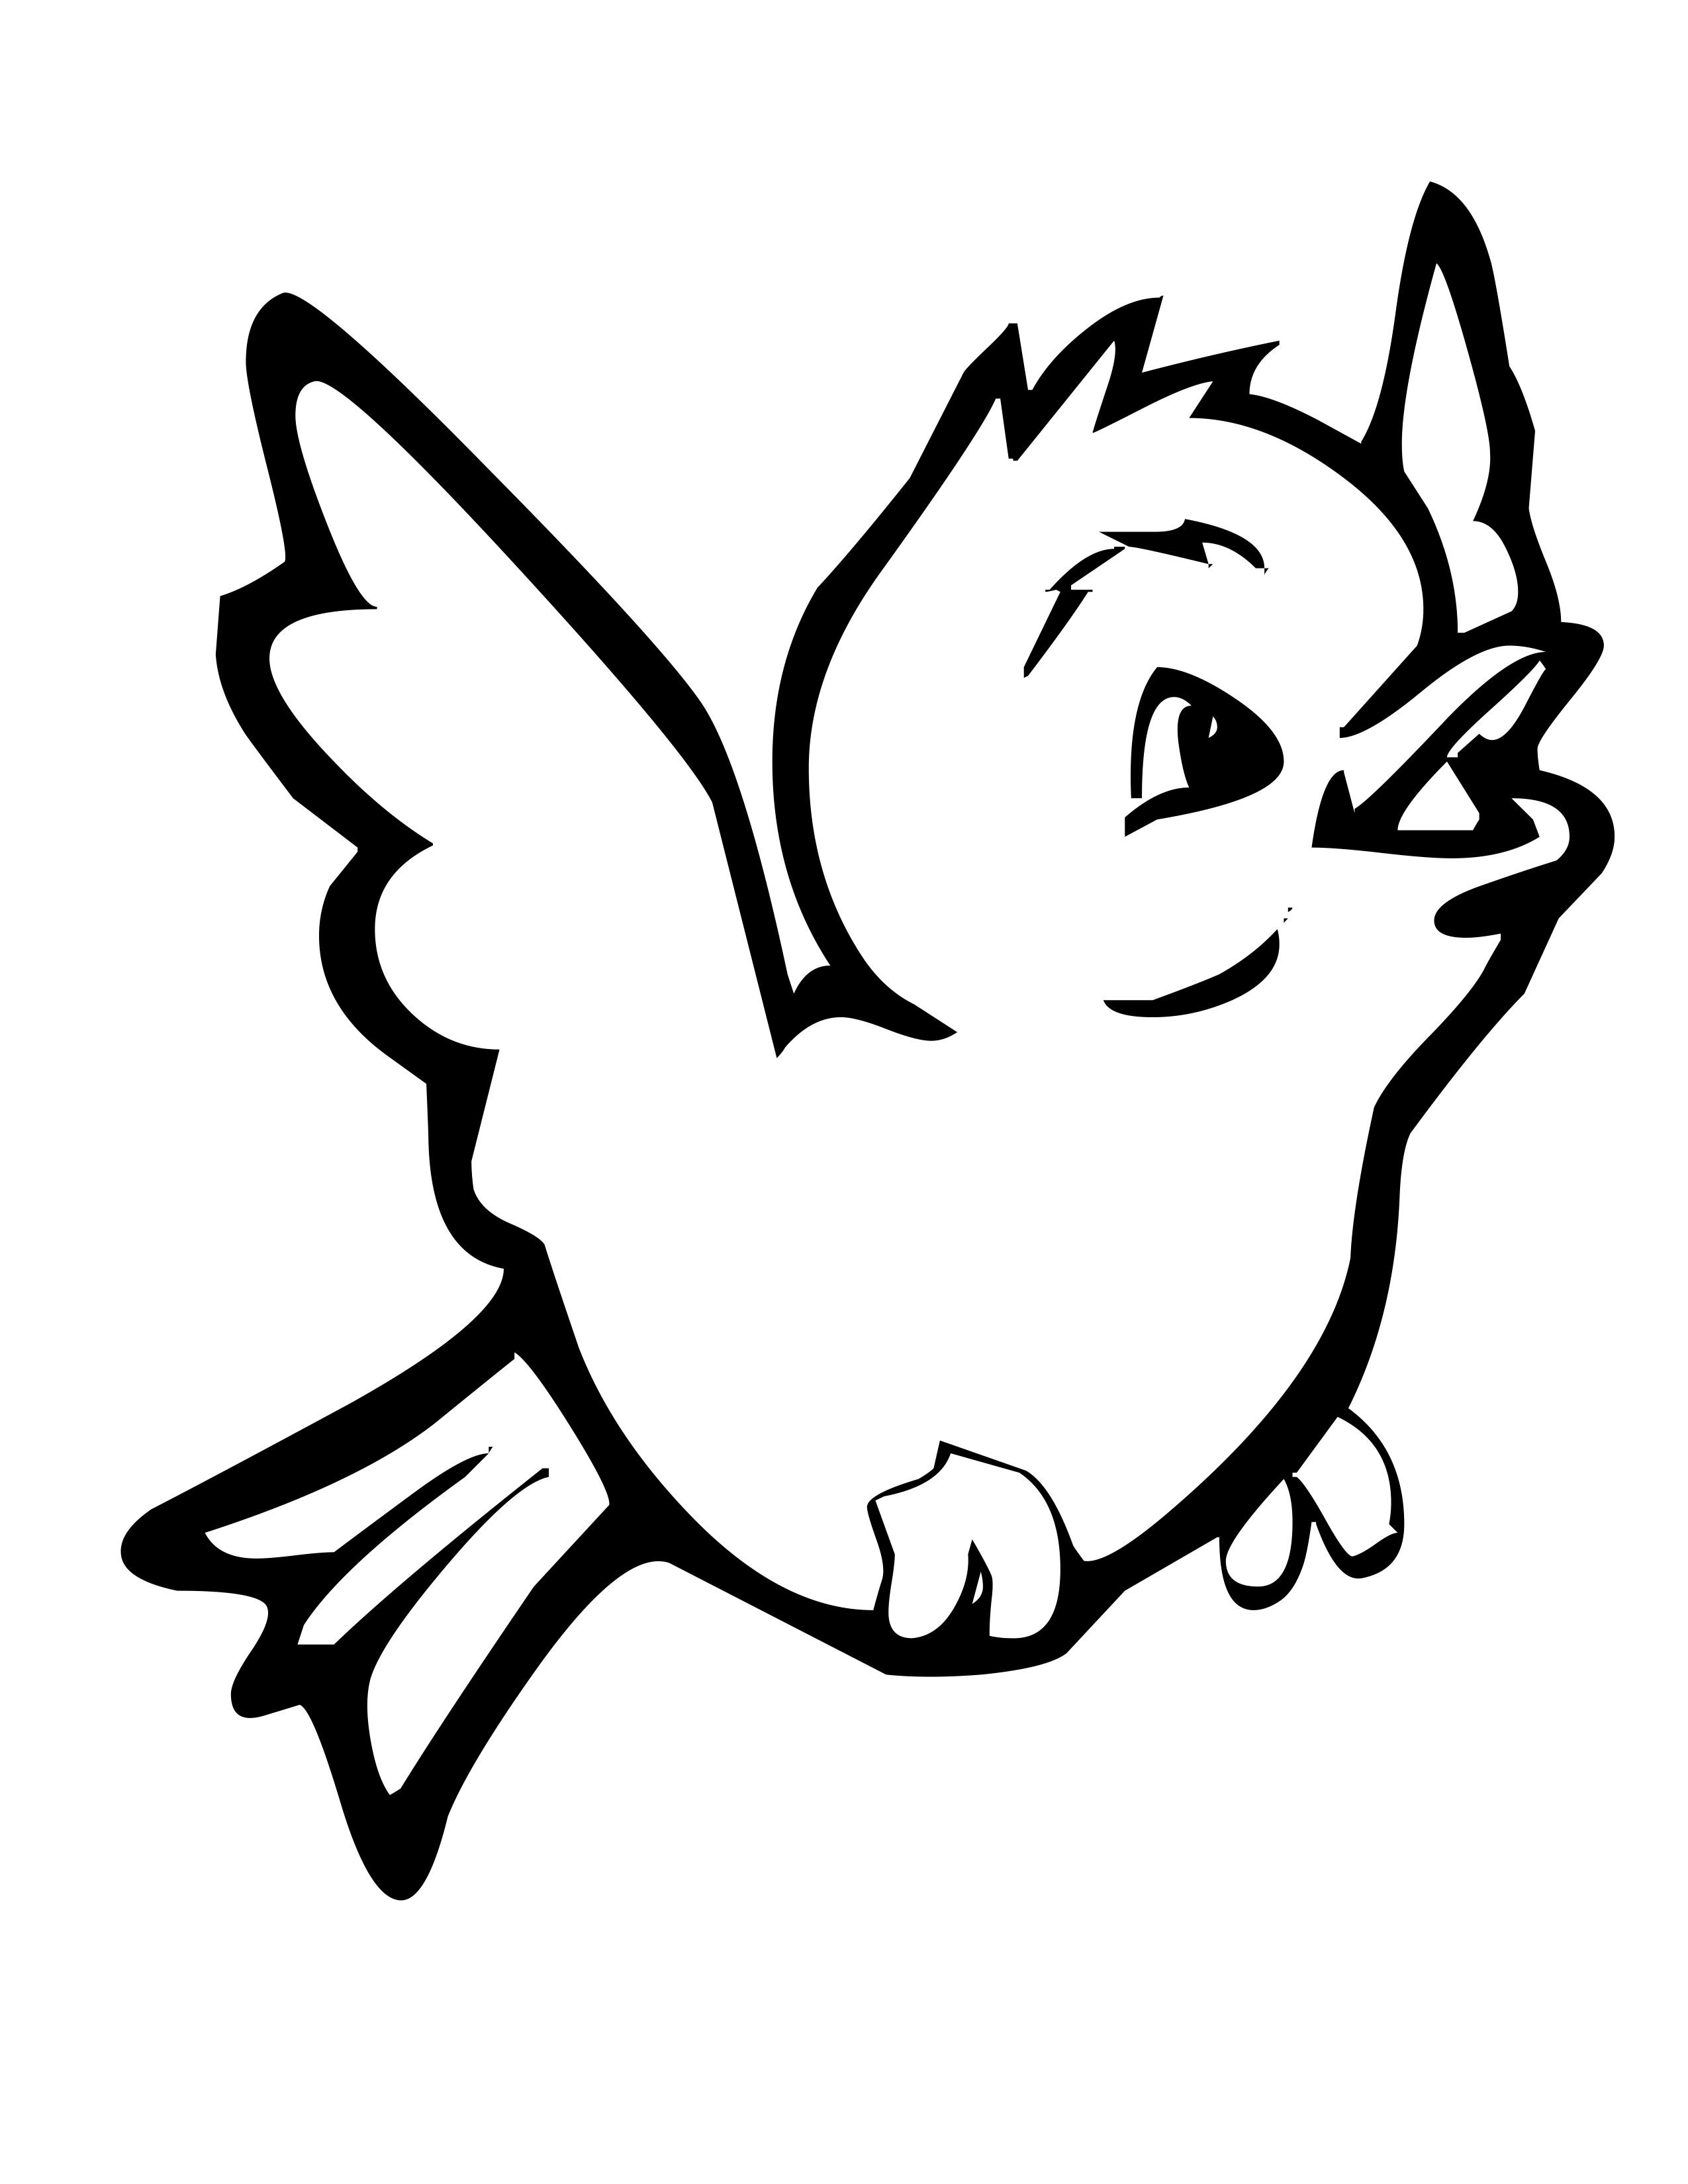 coloring pictures birds cute bird coloring page for kids tsgoscom pictures coloring birds